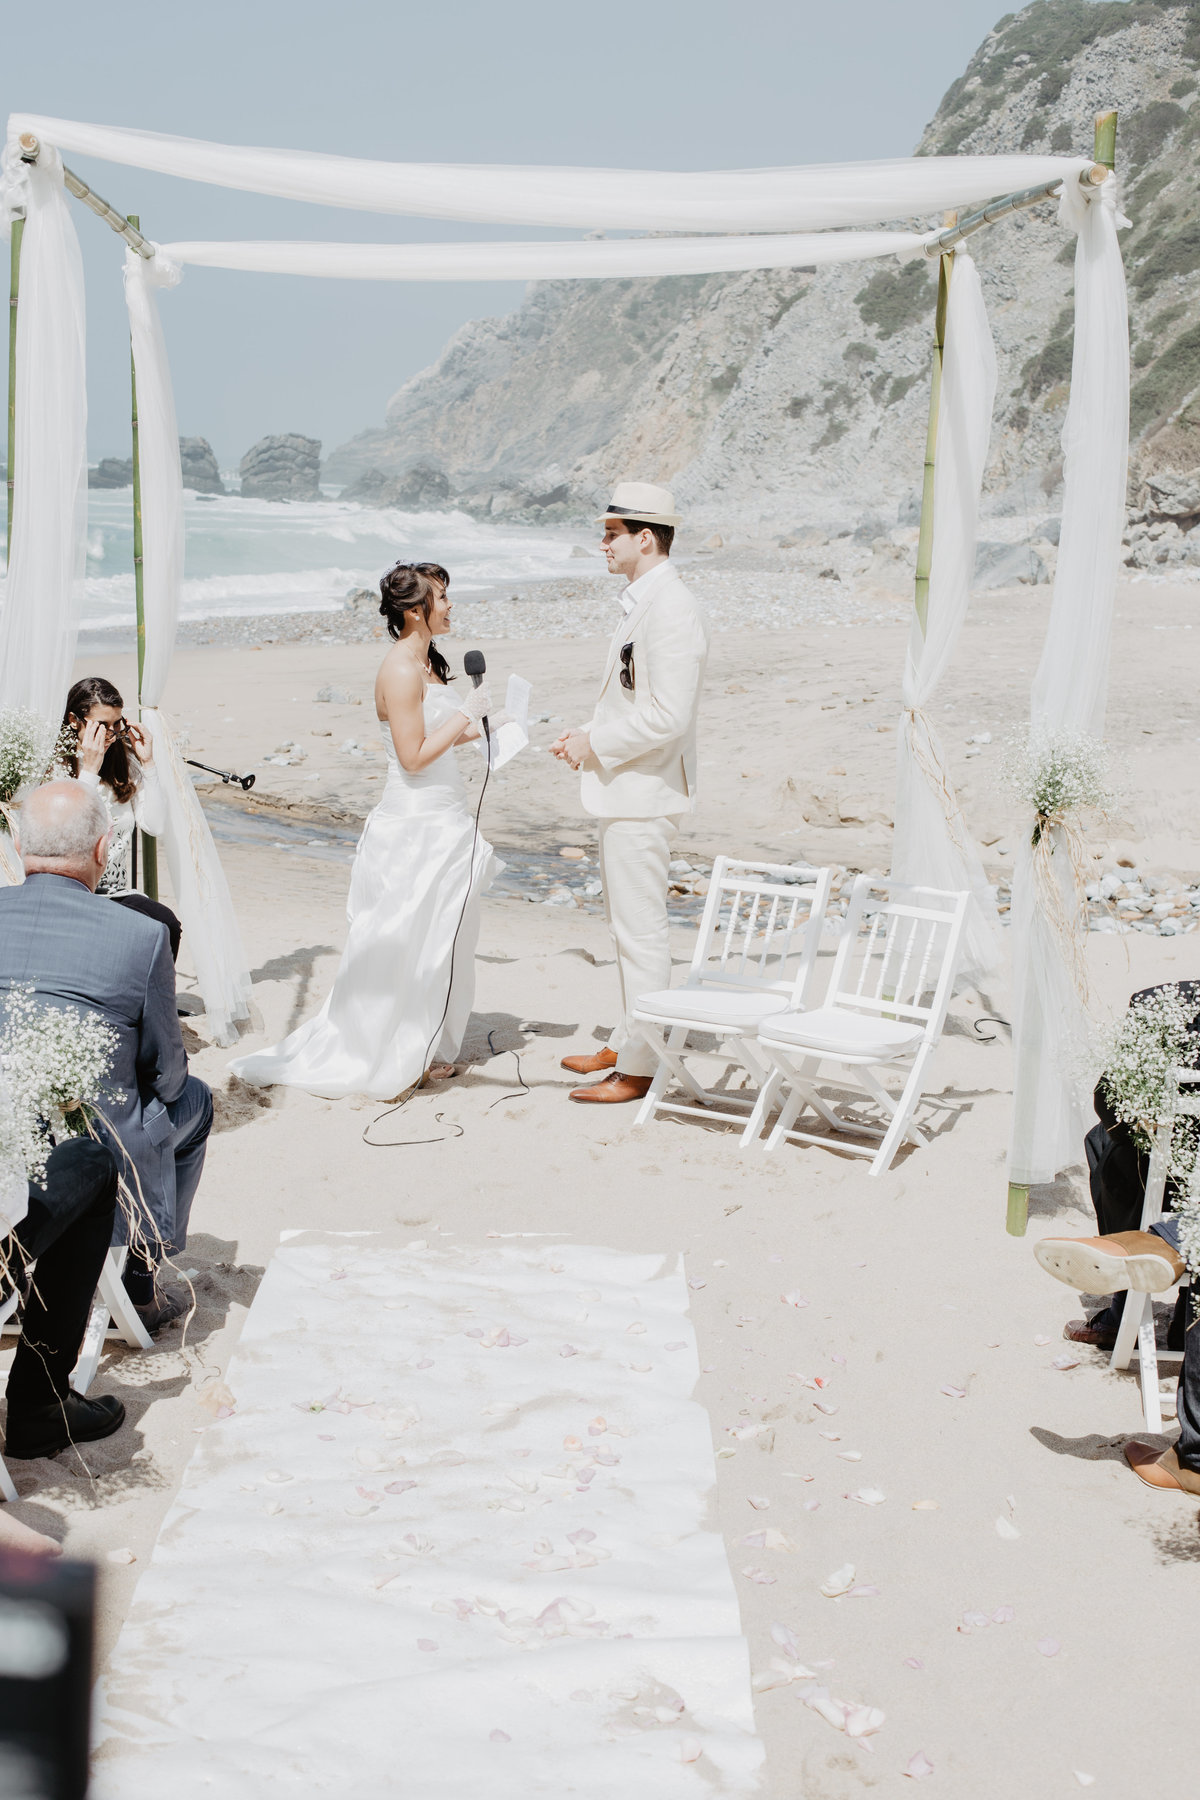 7ValerieVisschedijk - Destinationwedding - Portugal-7